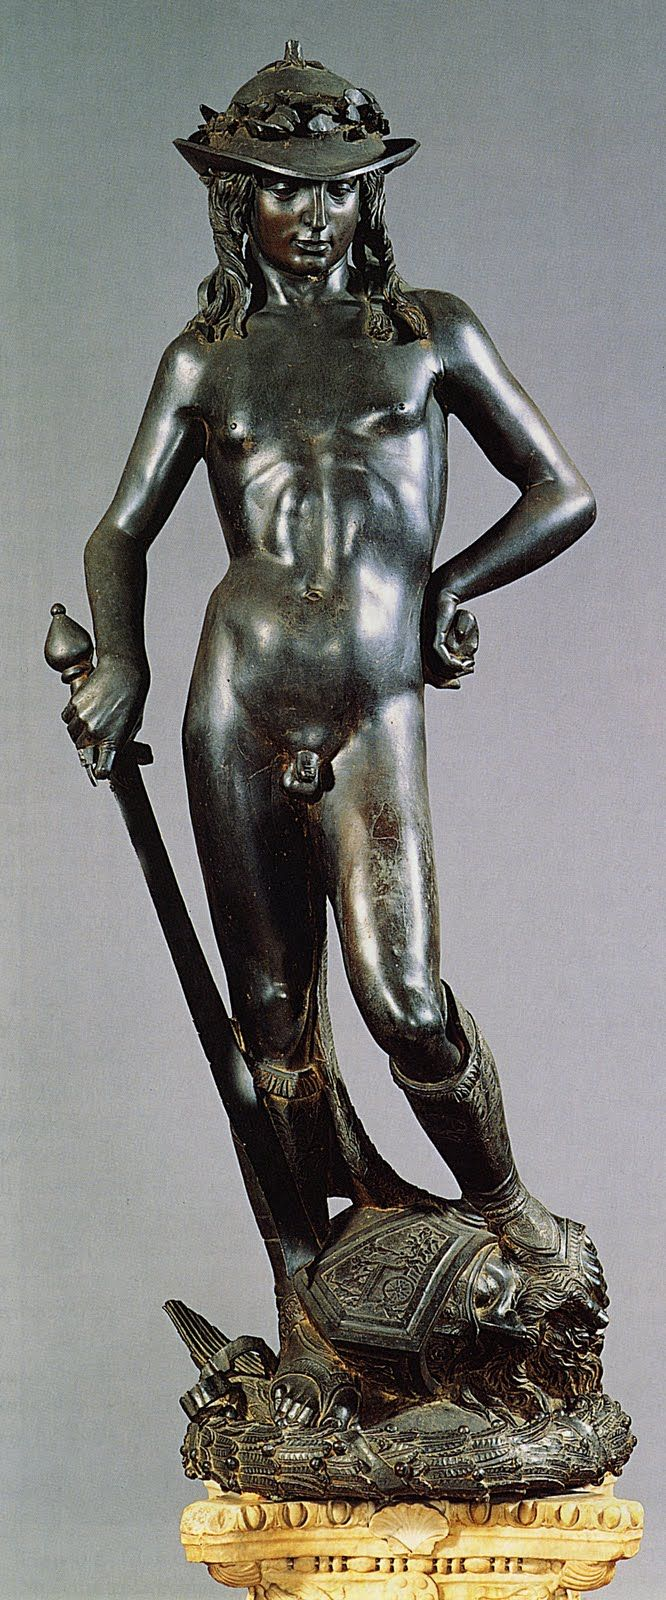 Donato (1386 – 1466 . Florence), also known as Donatello, was an early Renaissance Italian painter and sculptor. He is known for his work in bas-relief, a form of shallow relief sculpture that, in Donatello's case, incorporated significant 15th-century developments in perspectival illusionism.